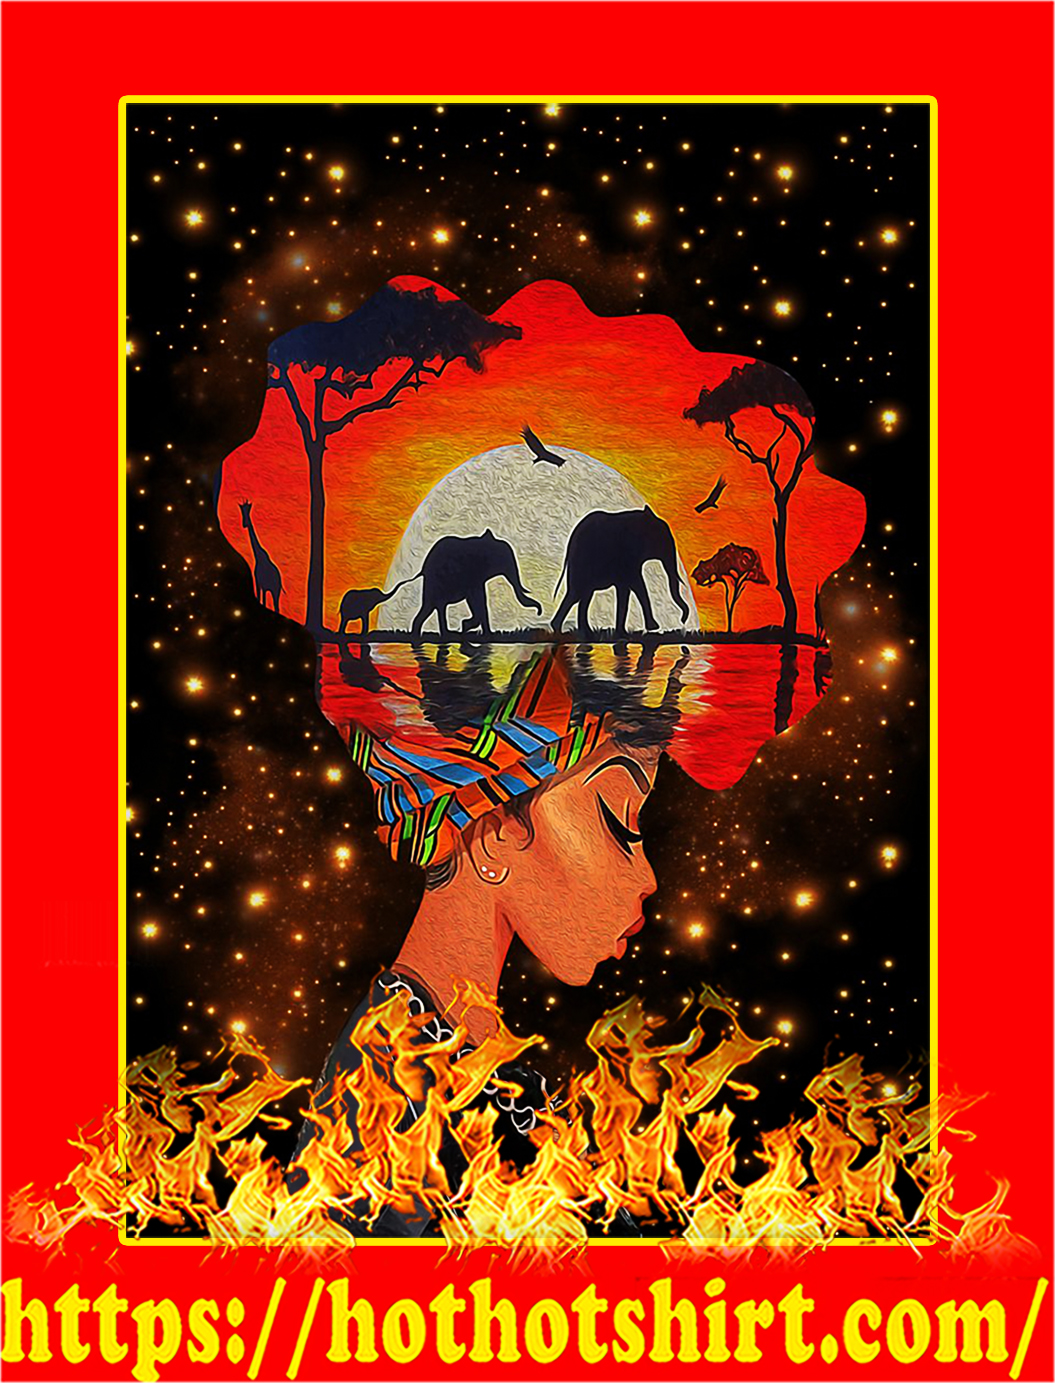 Black queen nature poster - A1